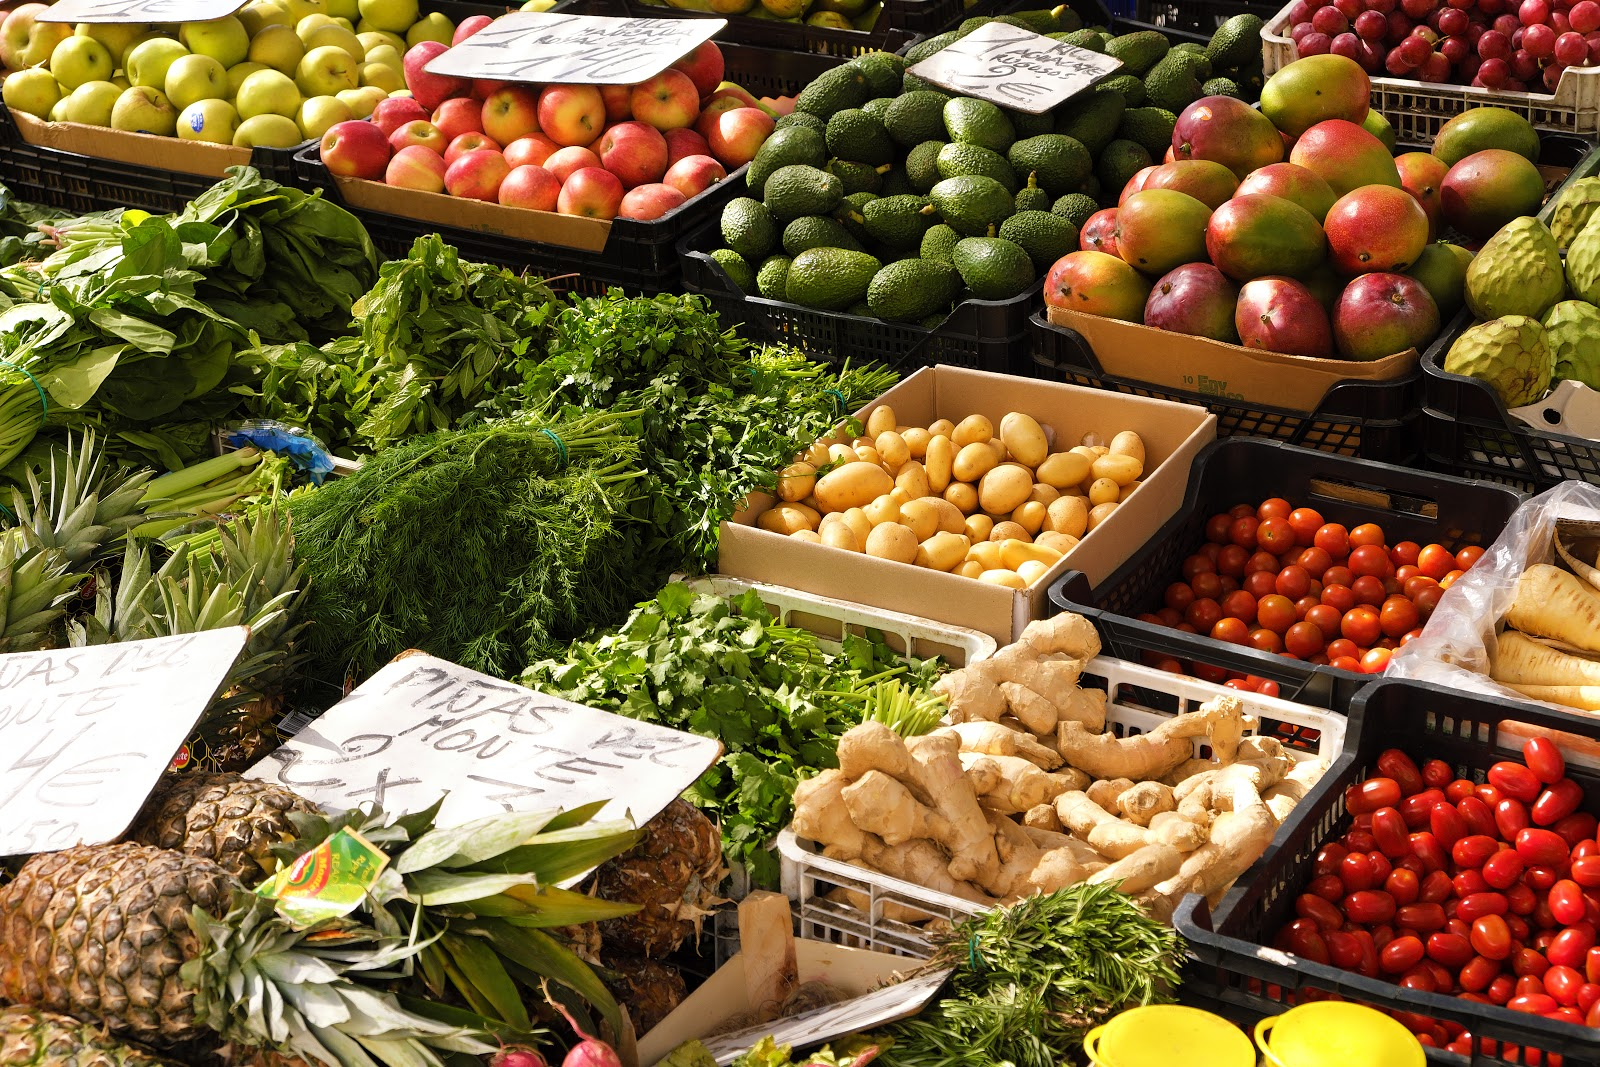 fruits and vegetables for sale in the market